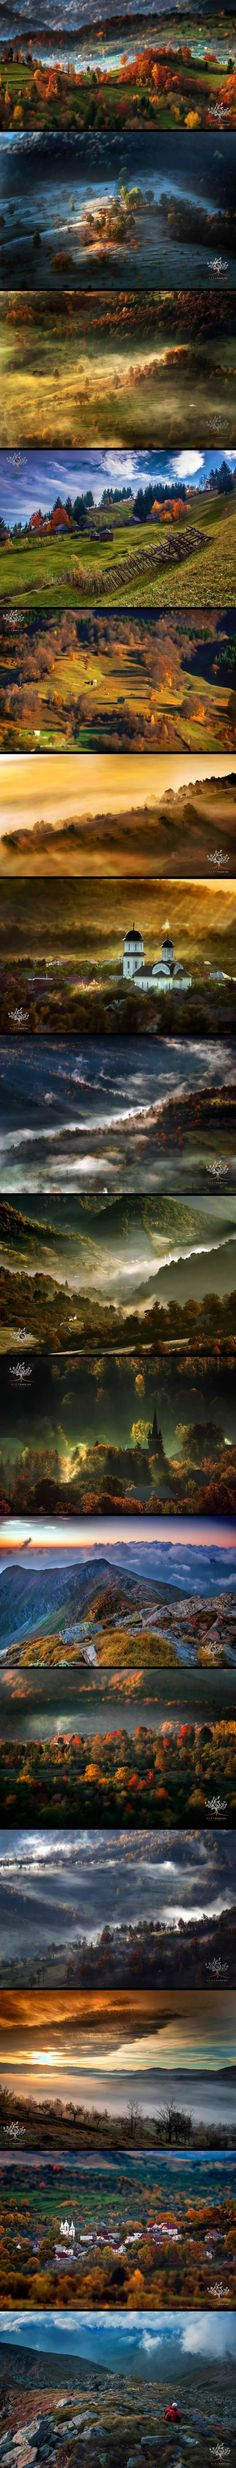 Photographer Wakes Up At 5am To Hike In Transylvanian Mountains And Photograph Stunning Landscapes